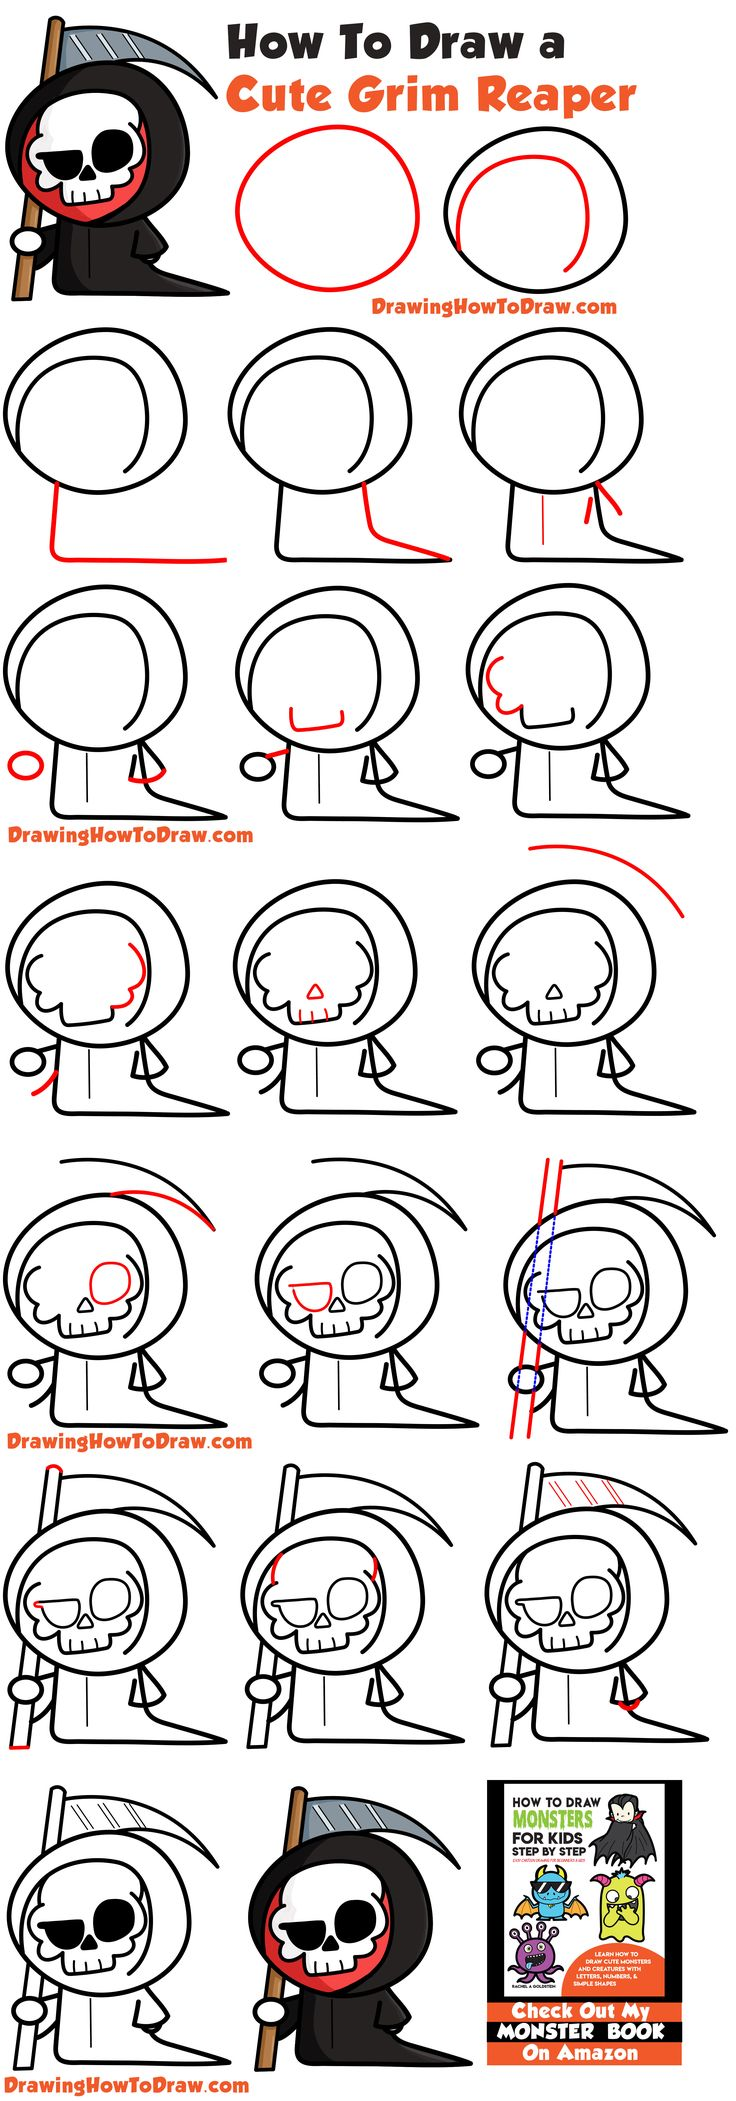 How to Draw a Cute Cartoon Grim Reaper (Kawaii / Chibi) Easy Step by Step Drawing Tutorial for Kids